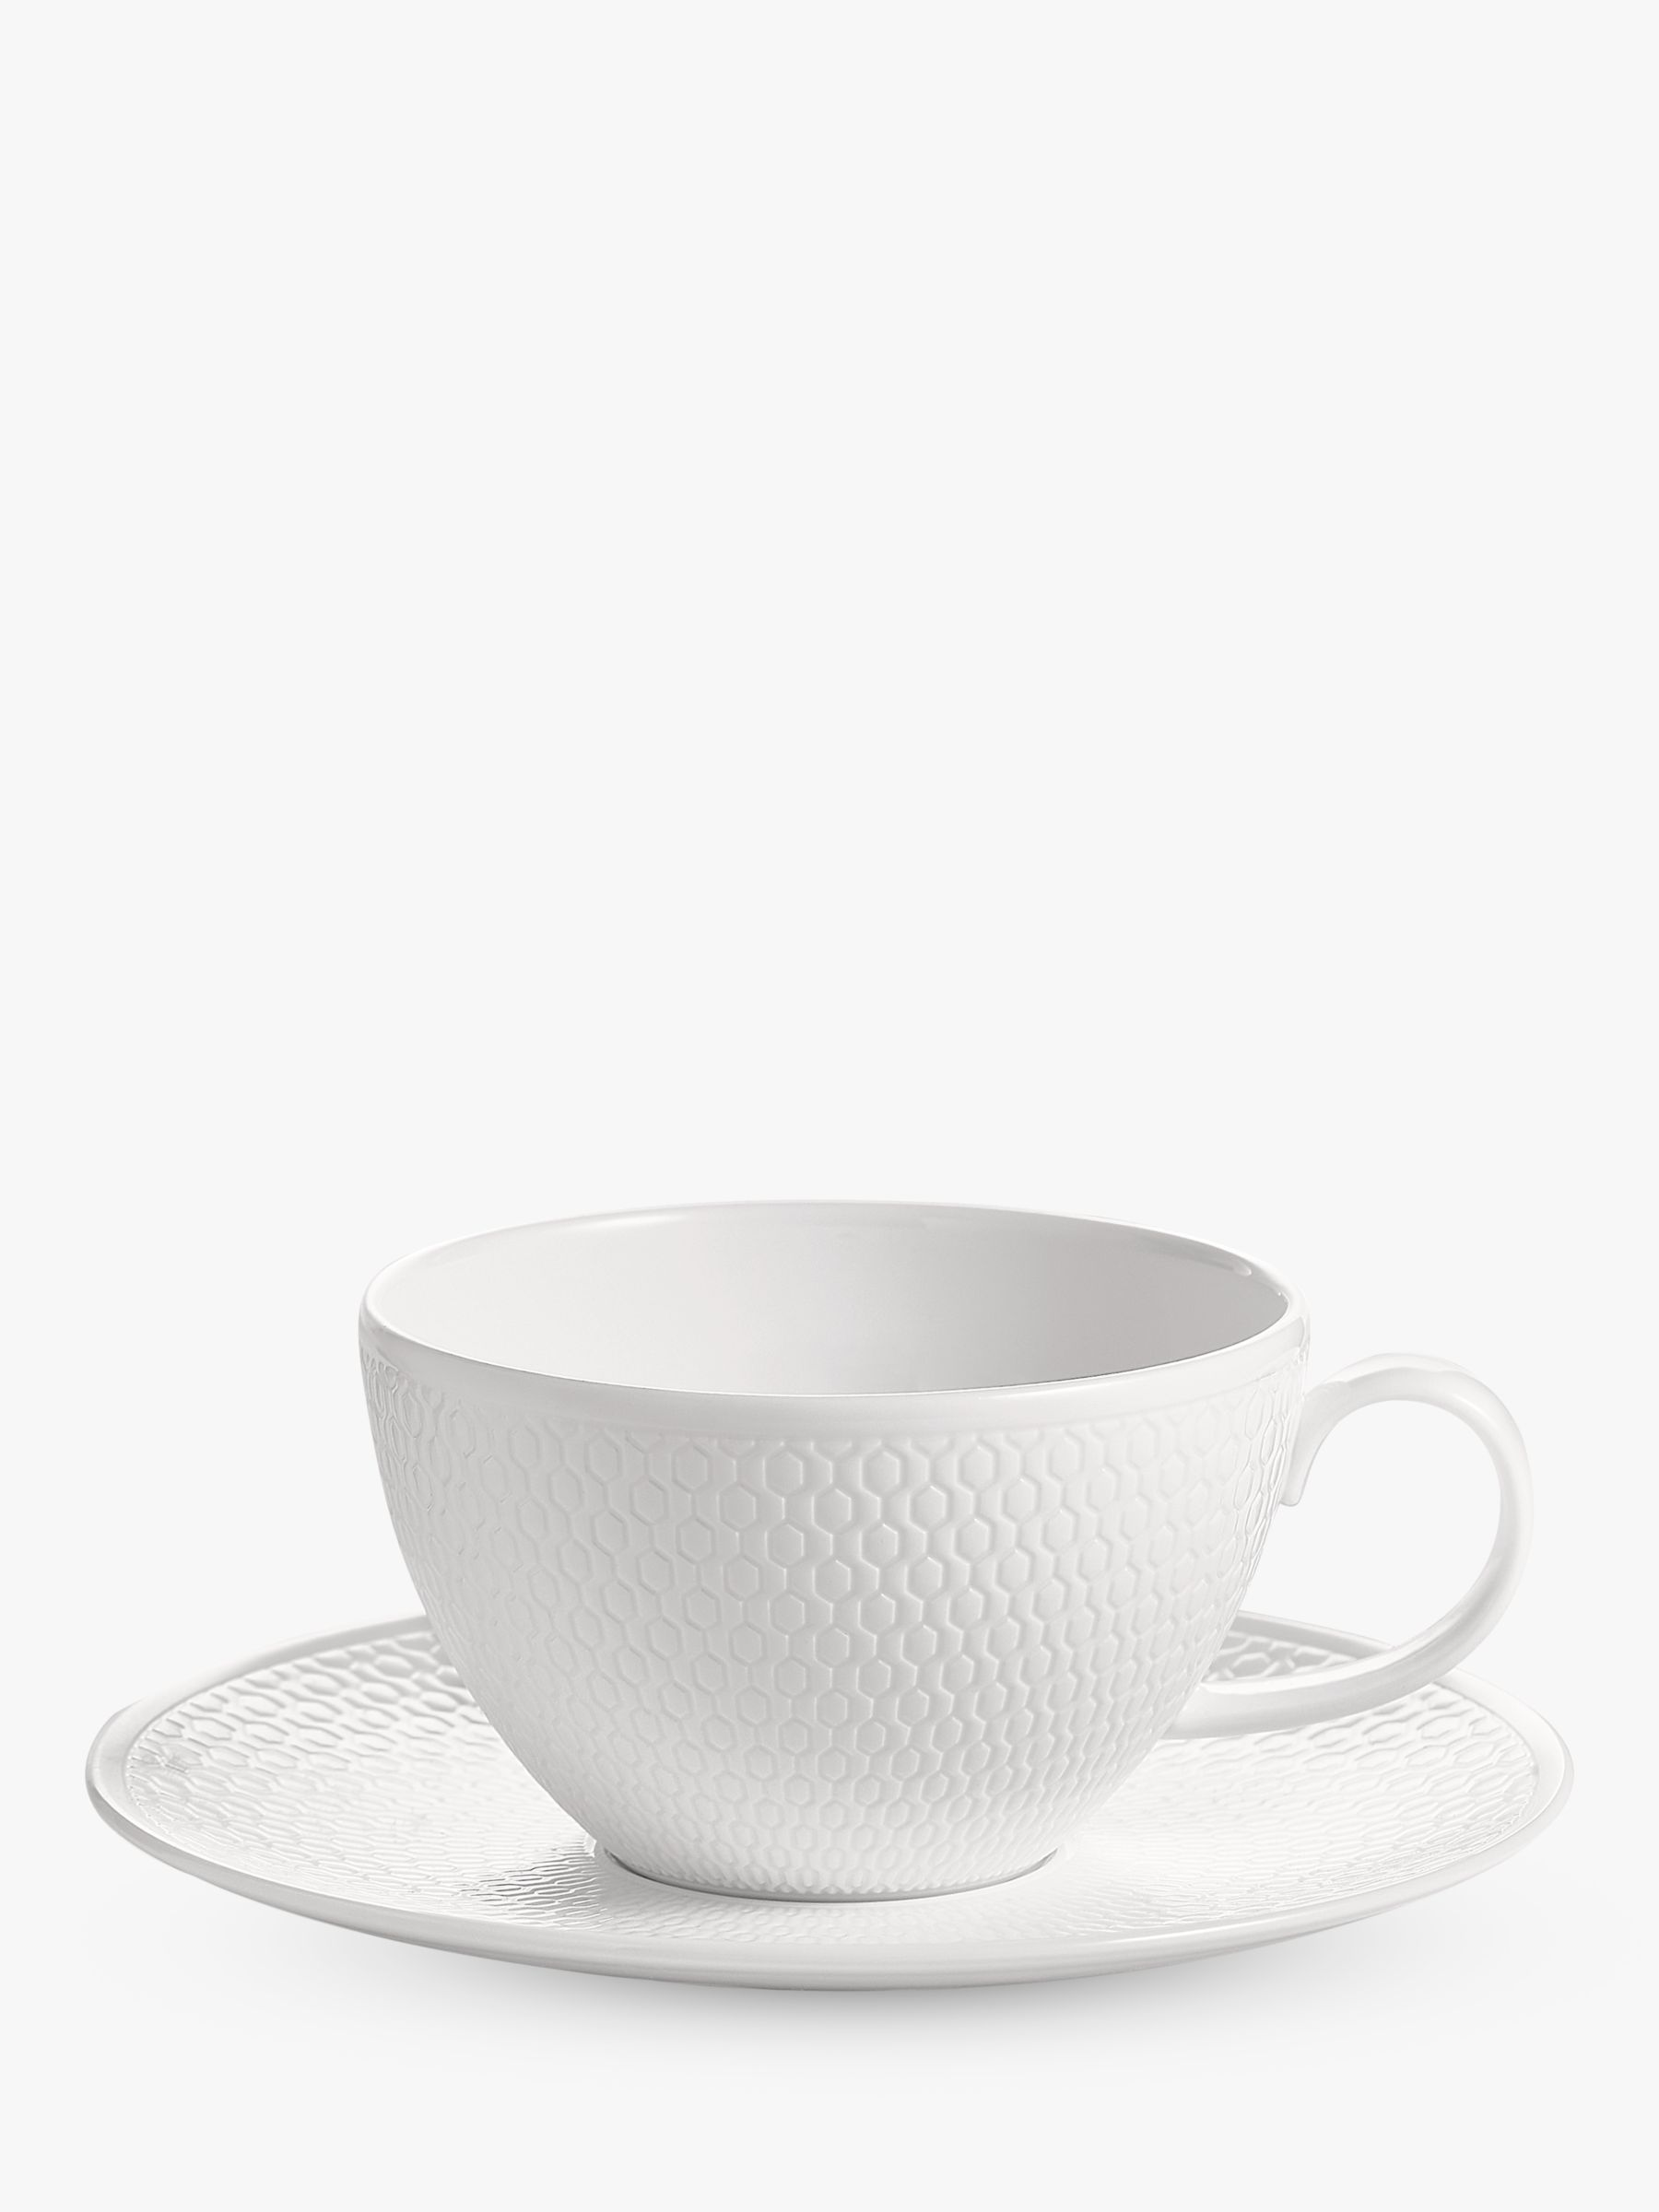 Wedgwood Wedgwood Gio Tea Cup and Saucer, White, 260ml